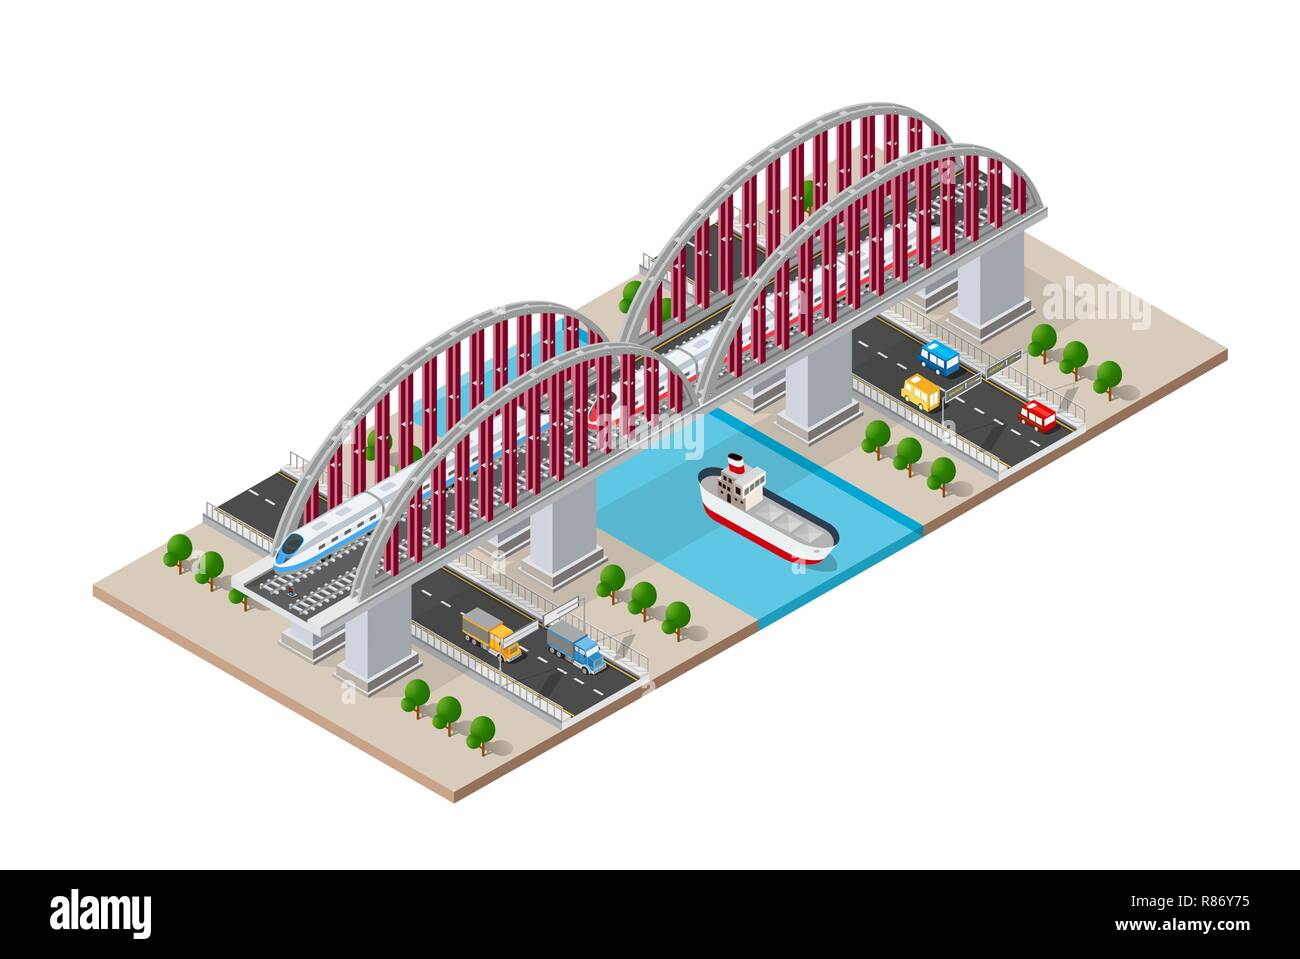 Railroad isometric bridge with railway and high-speed train by locomotive. Elements of urban transport transportation infrastructure Stock Vector